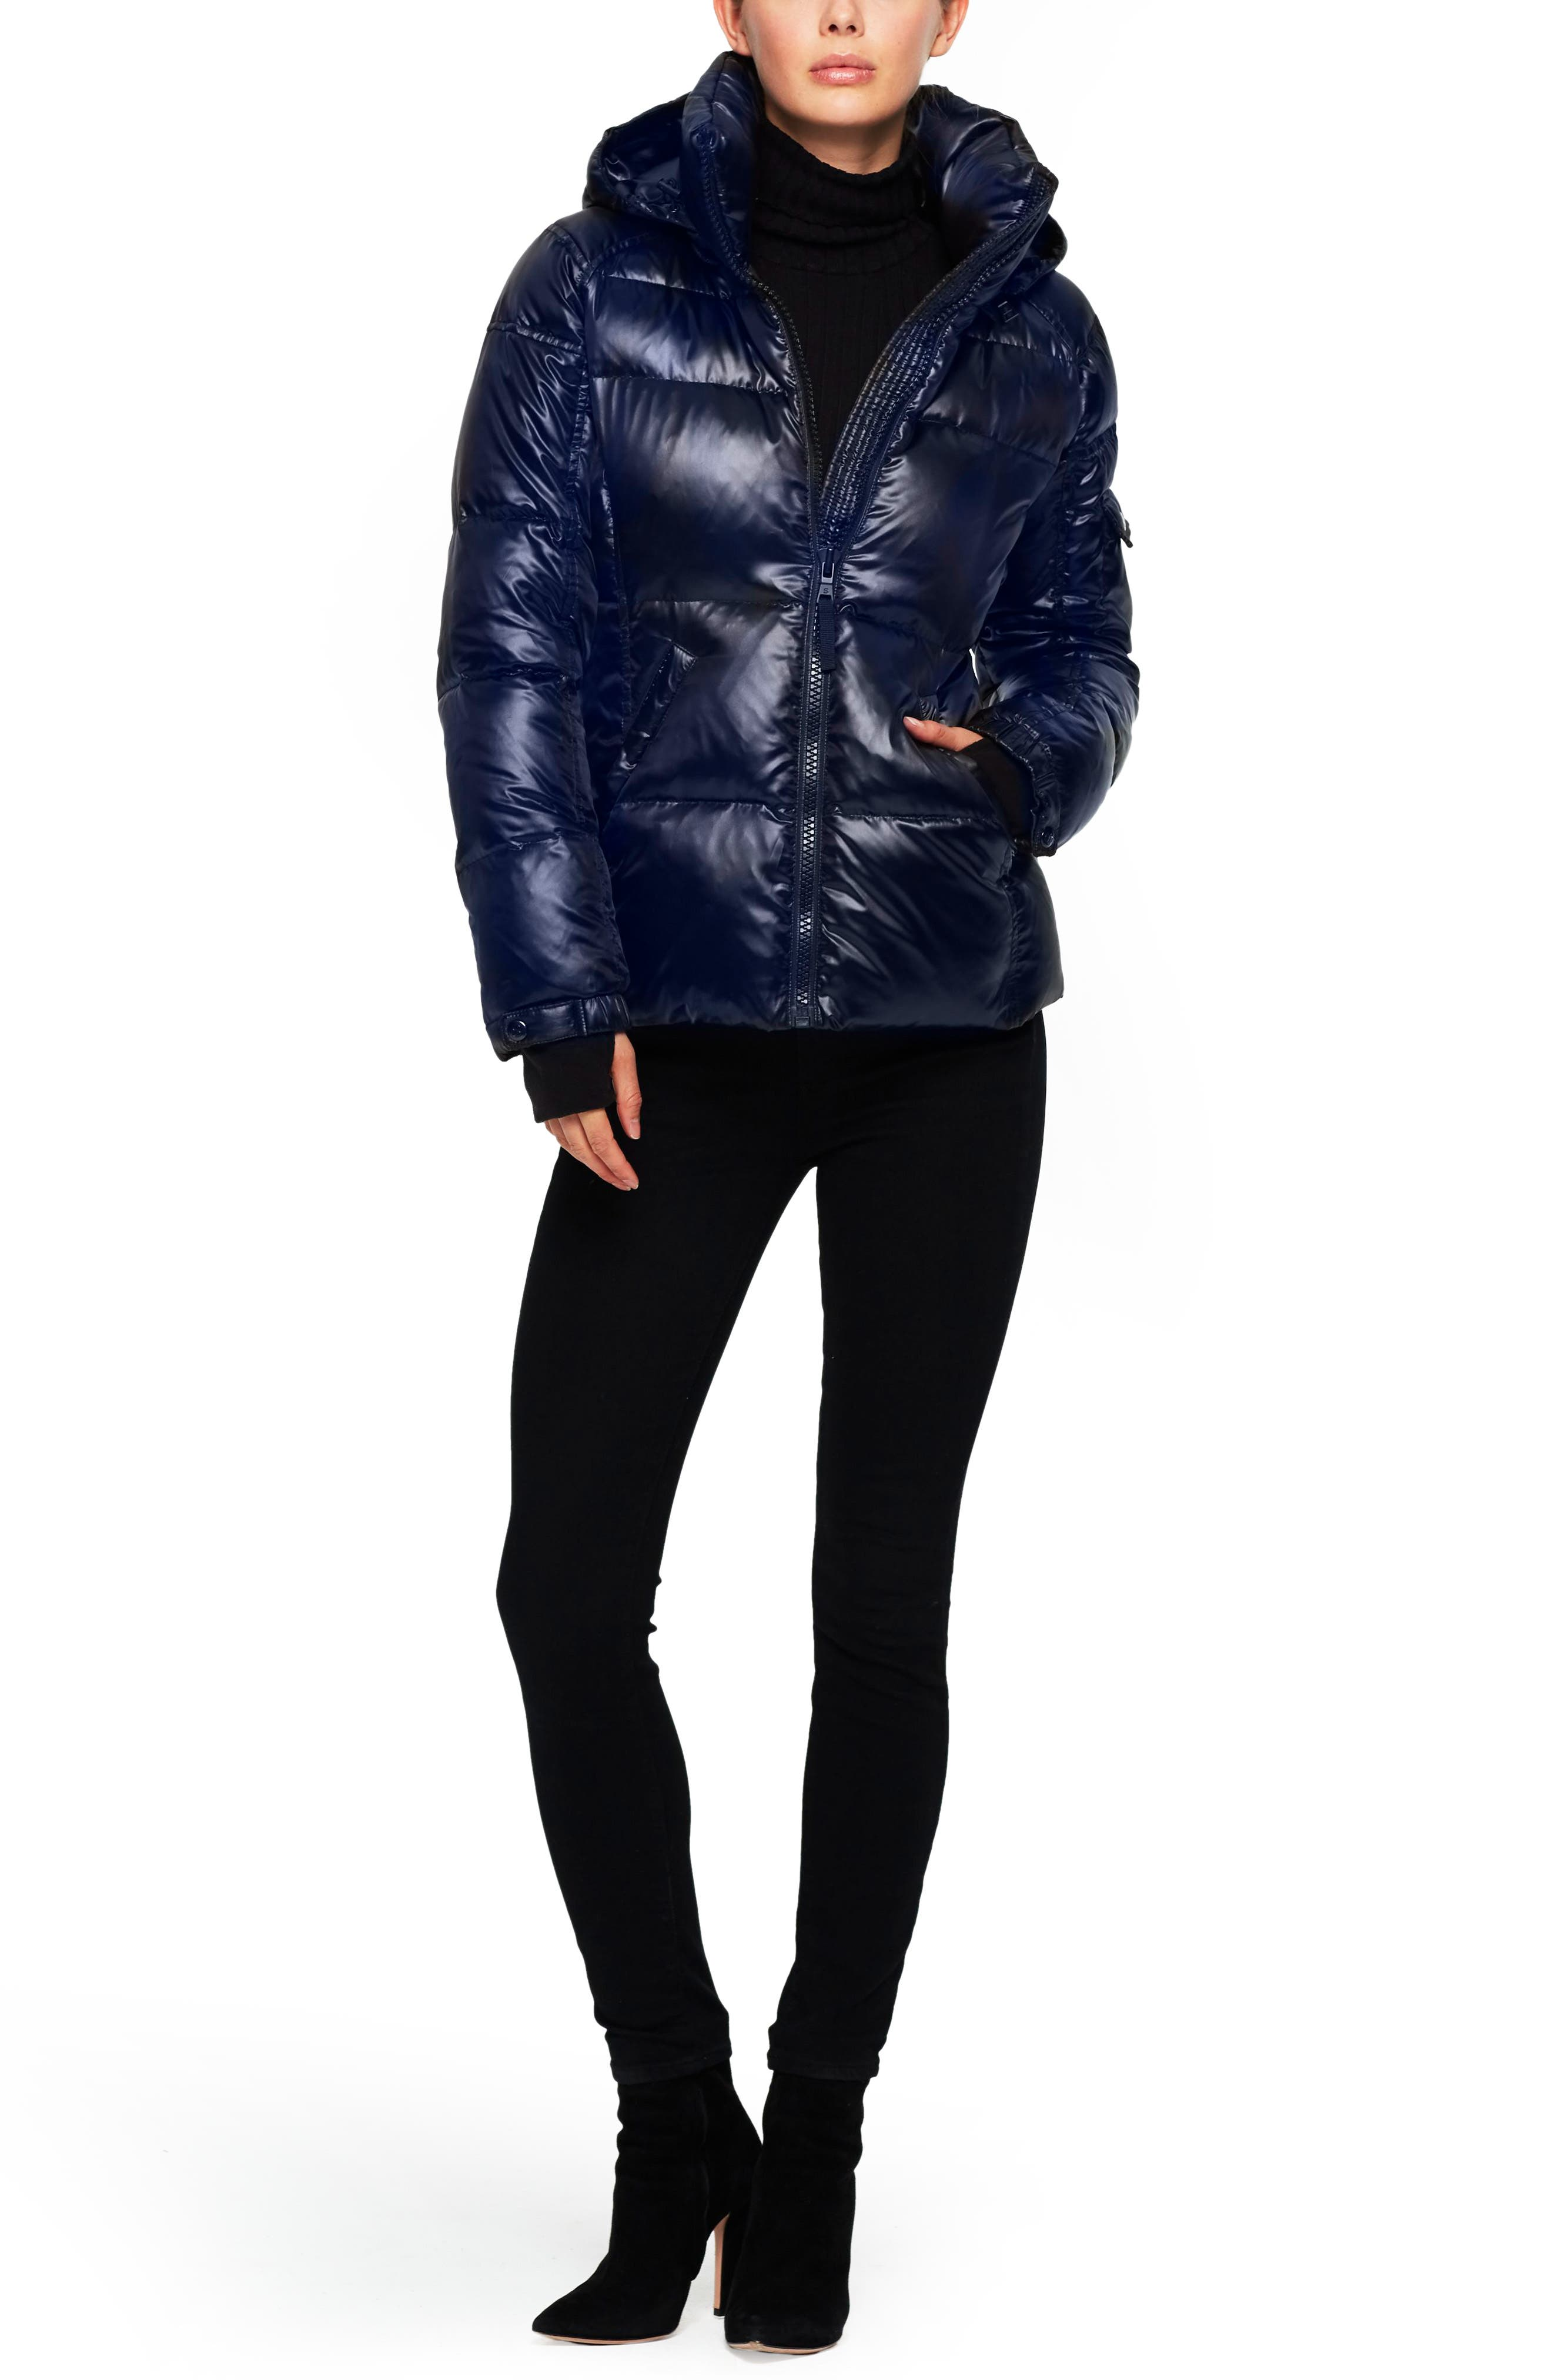 SAM S13/NYC Kylie Metallic Quilted Jacket with Removable Hood,                         Main,                         color, Midnight